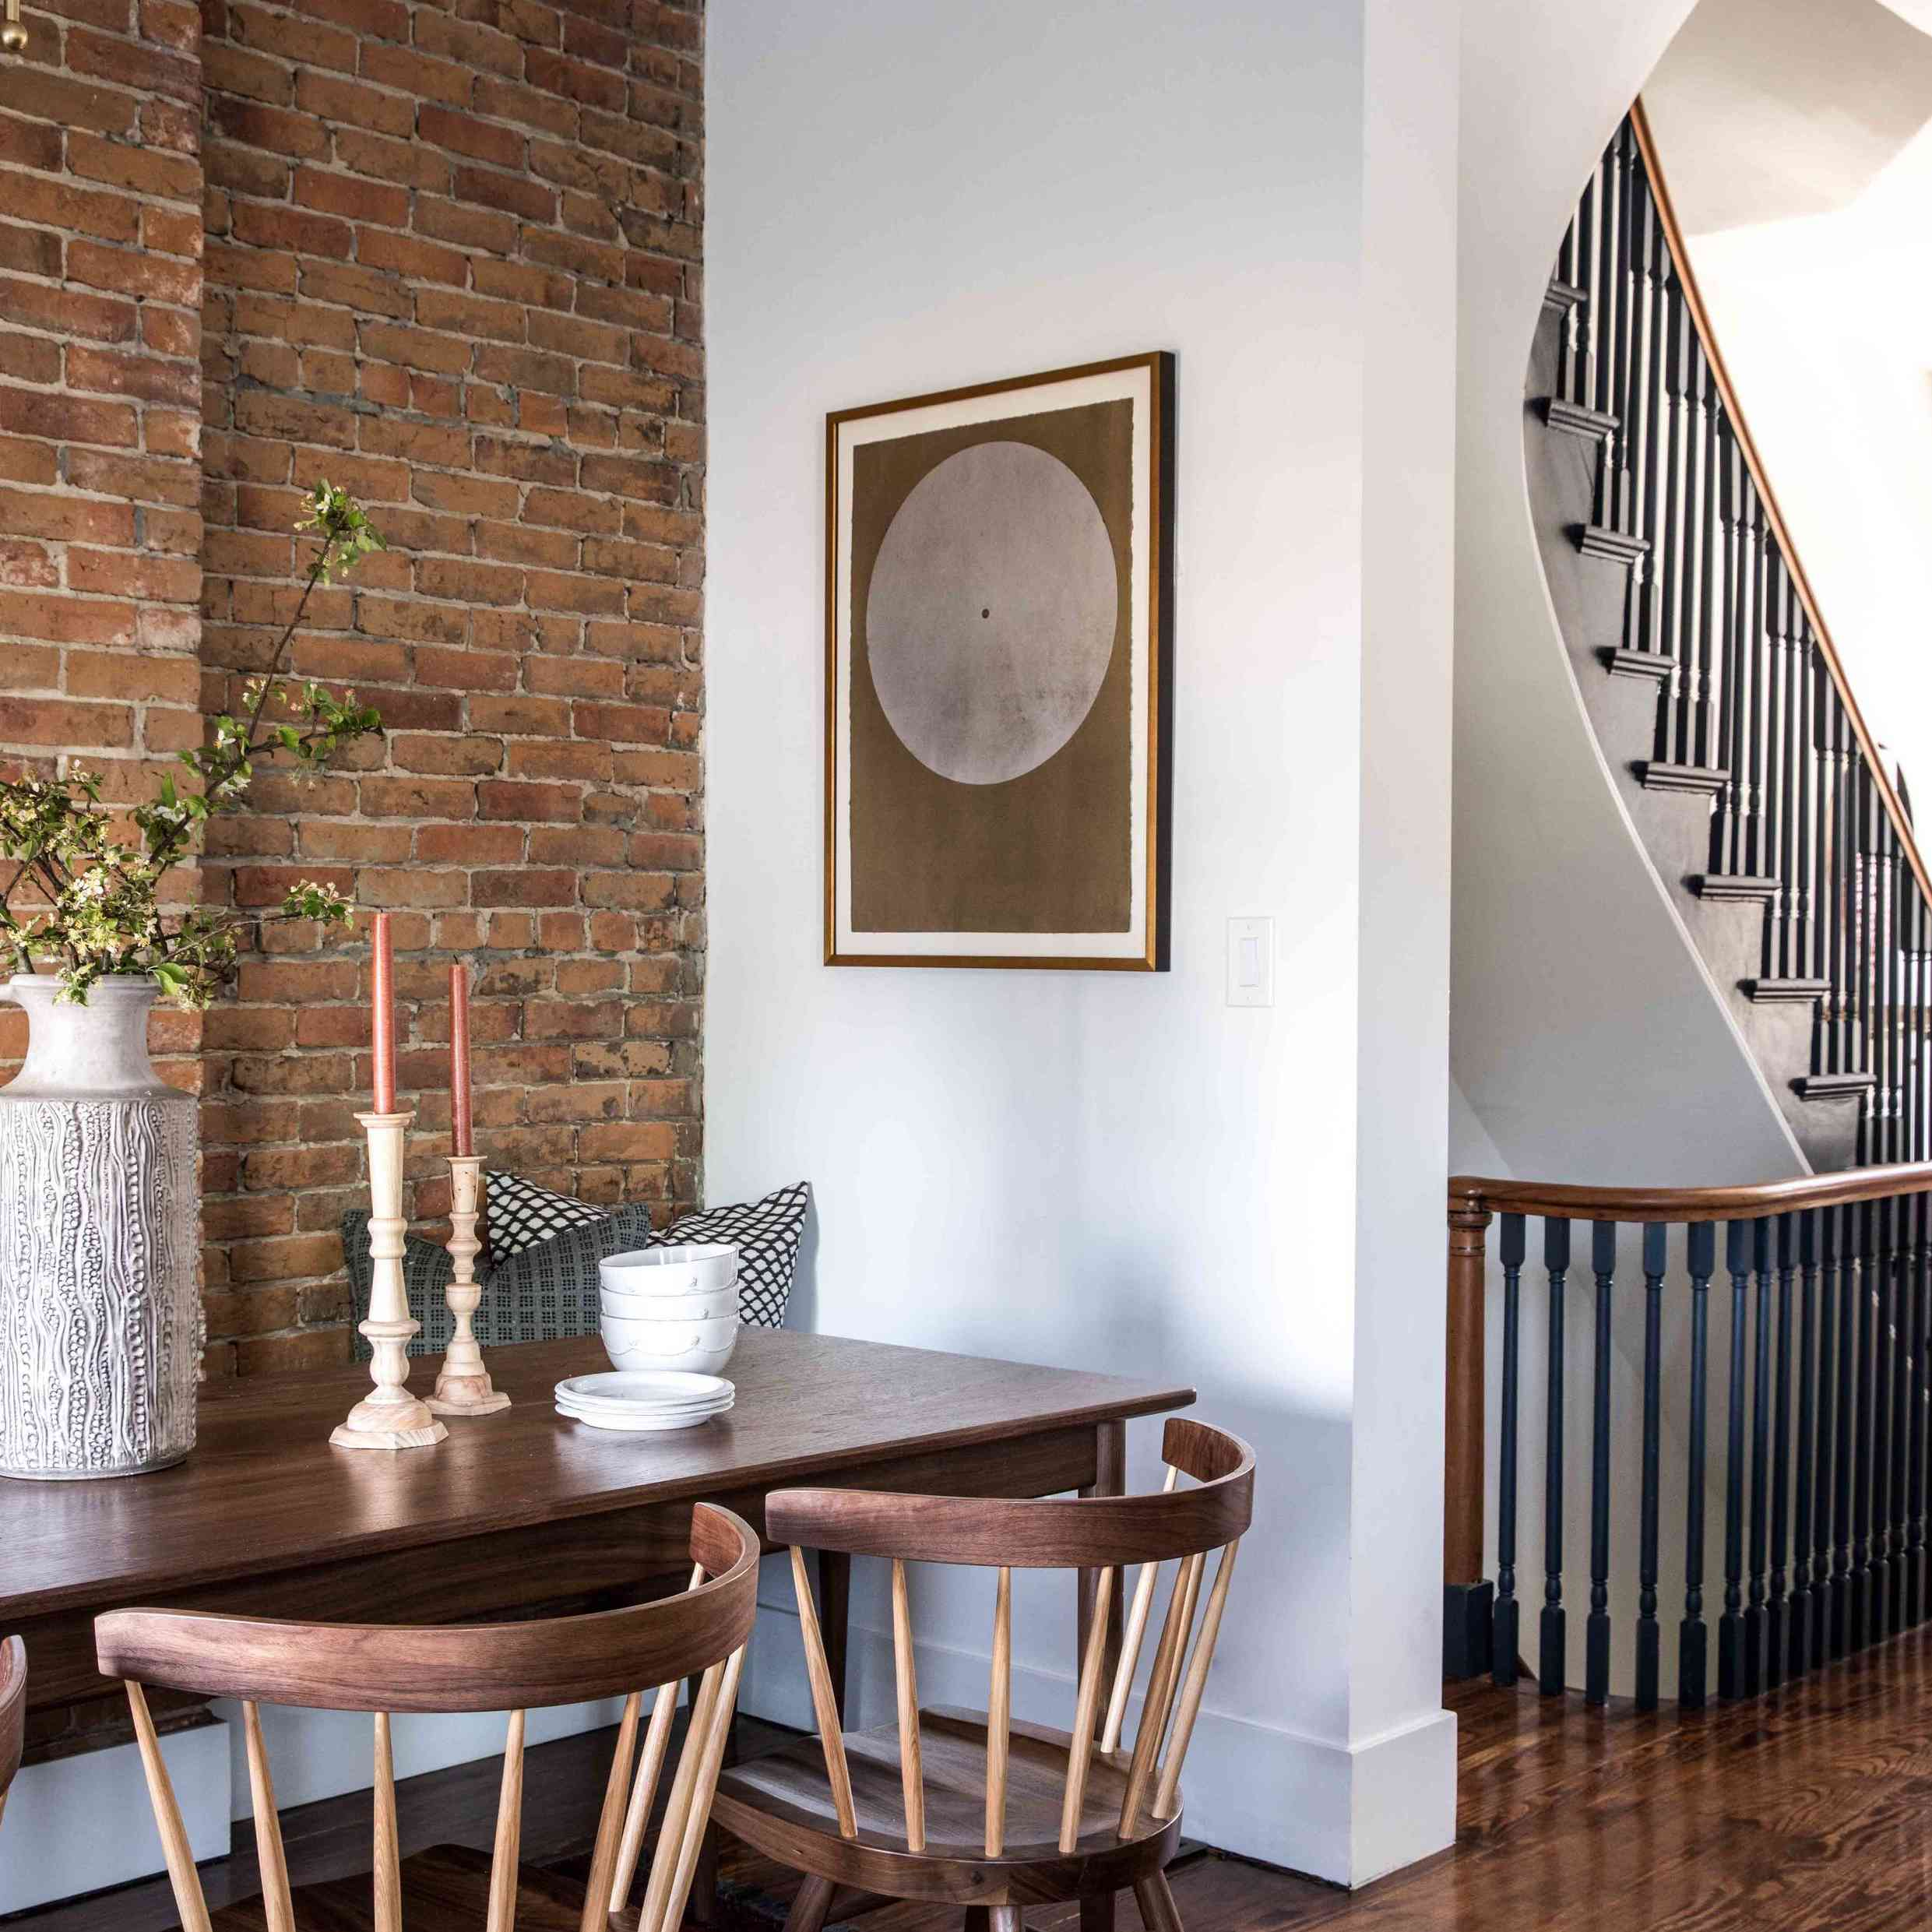 dining room with exposed brick wall and white wall corner, lone piece of artwork hanging